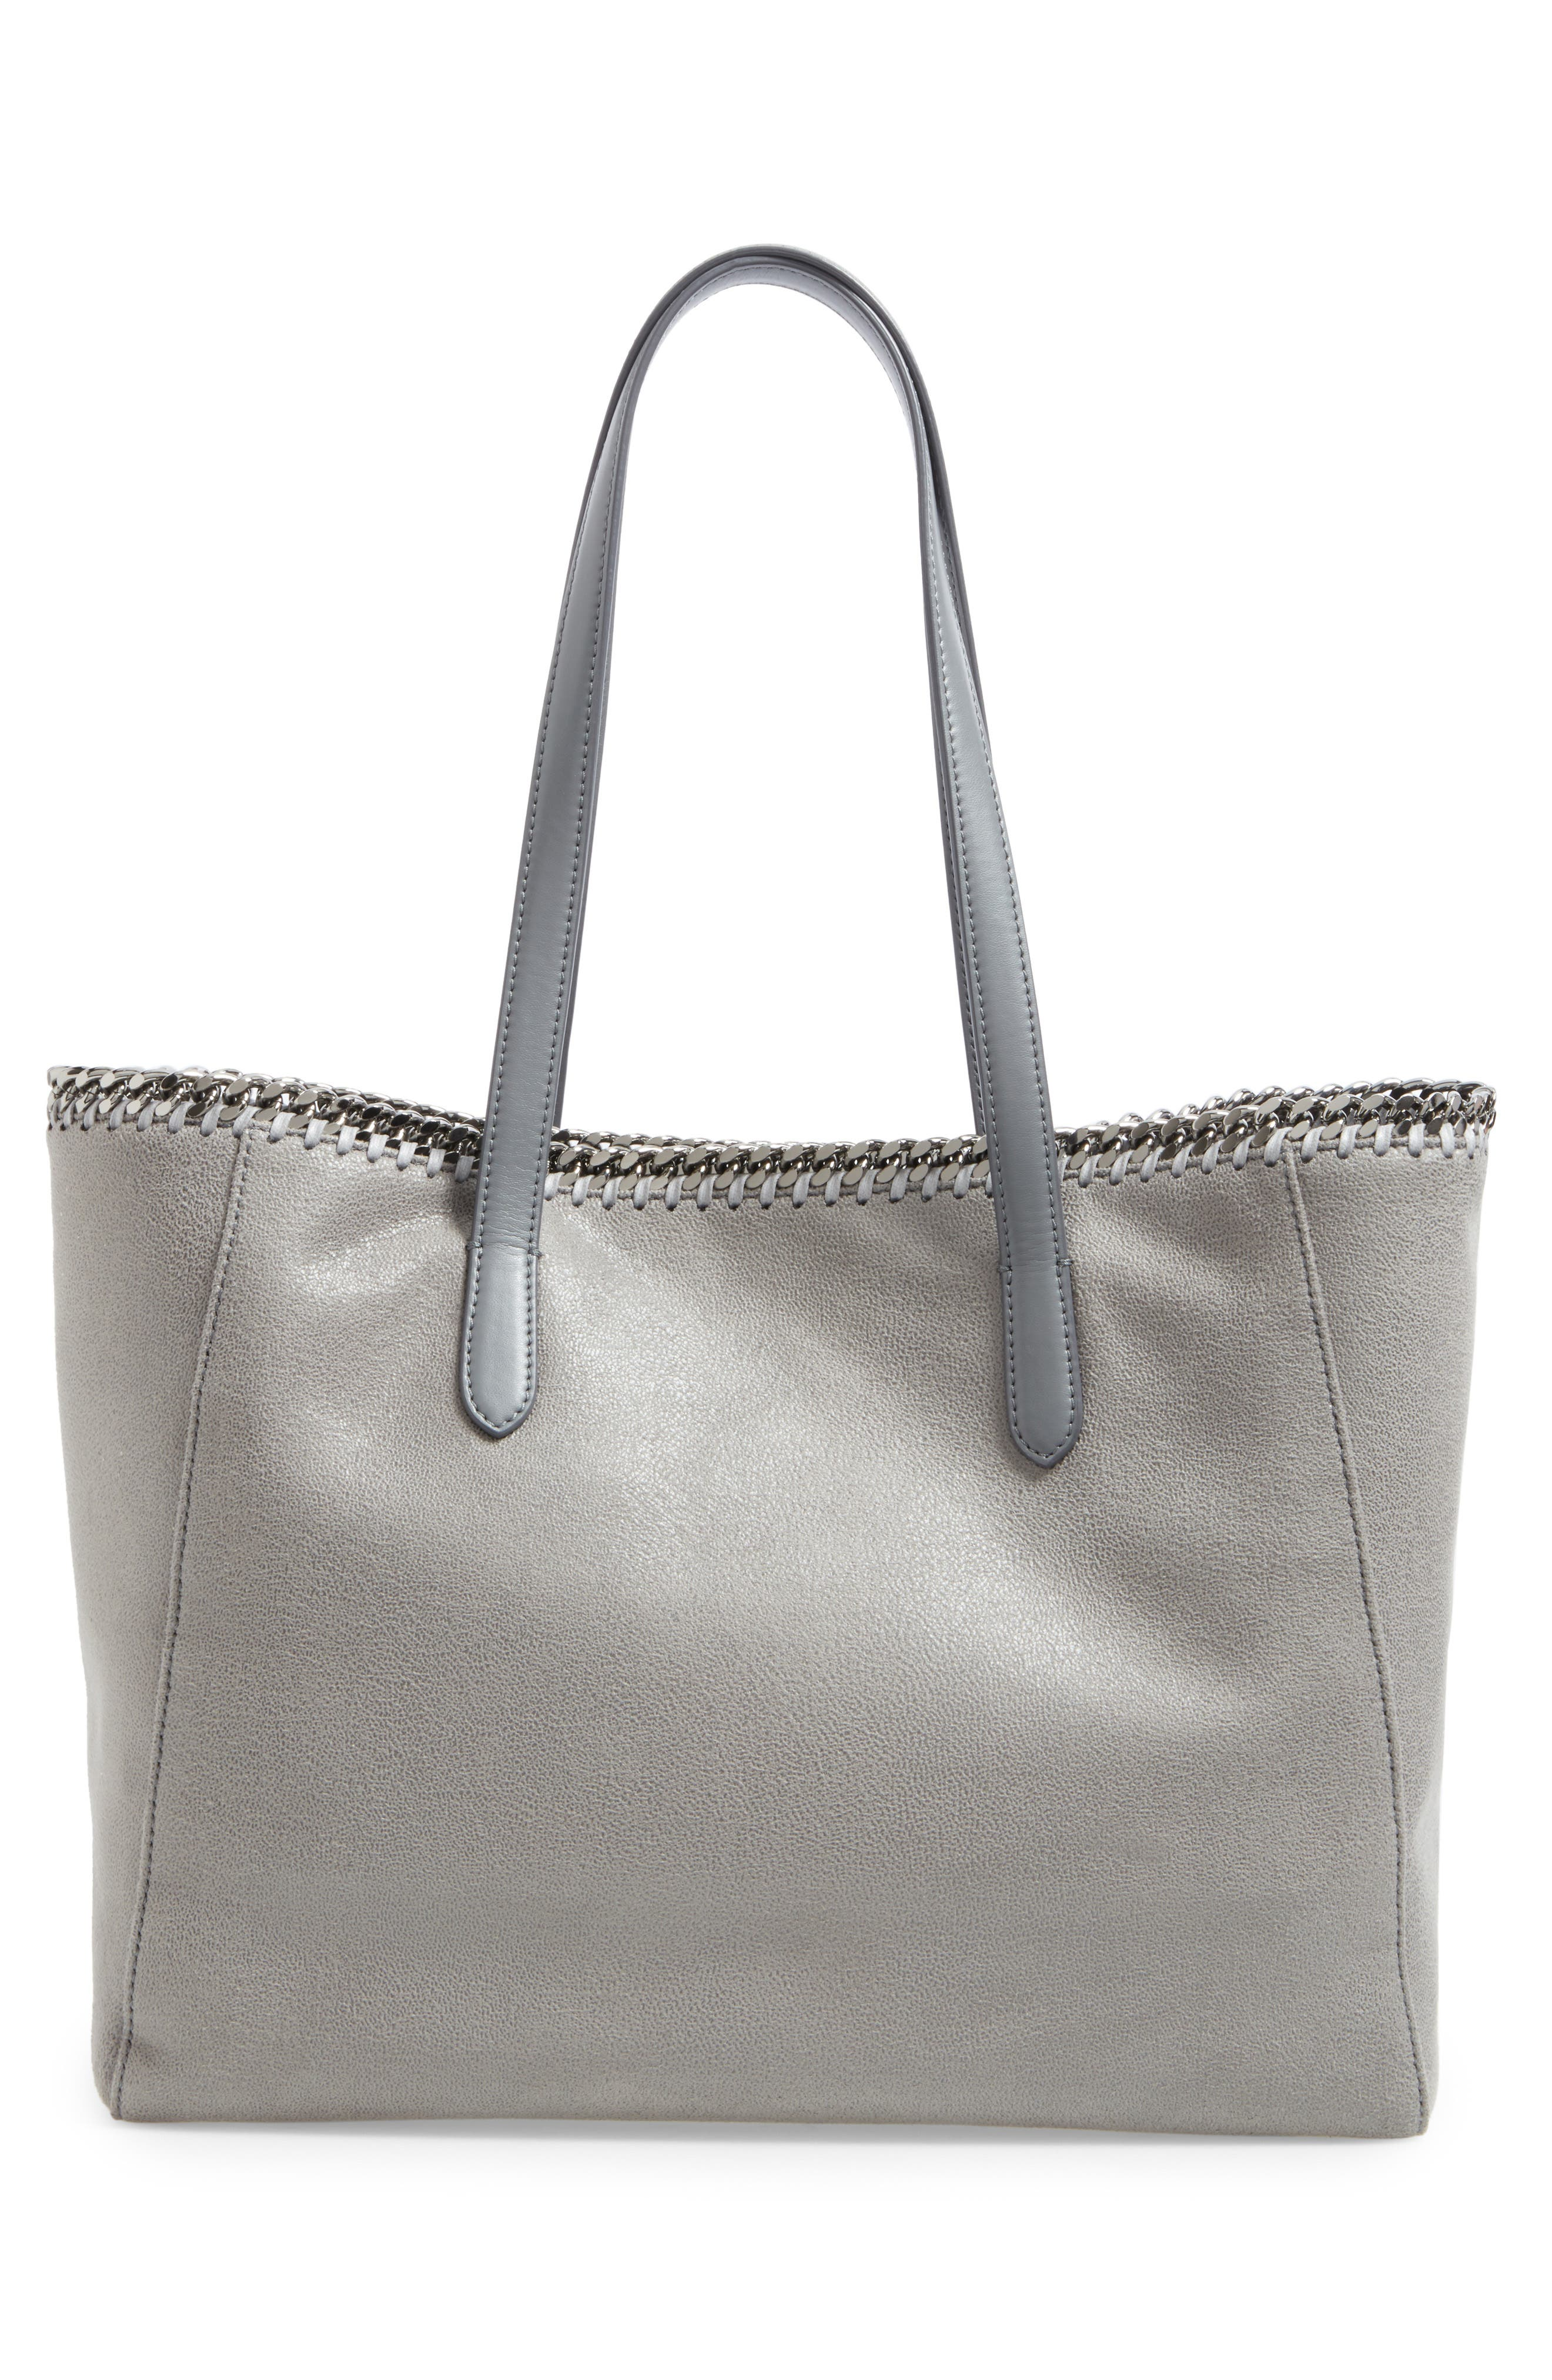 'Falabella - Shaggy Deer' Faux Leather Tote,                             Alternate thumbnail 10, color,